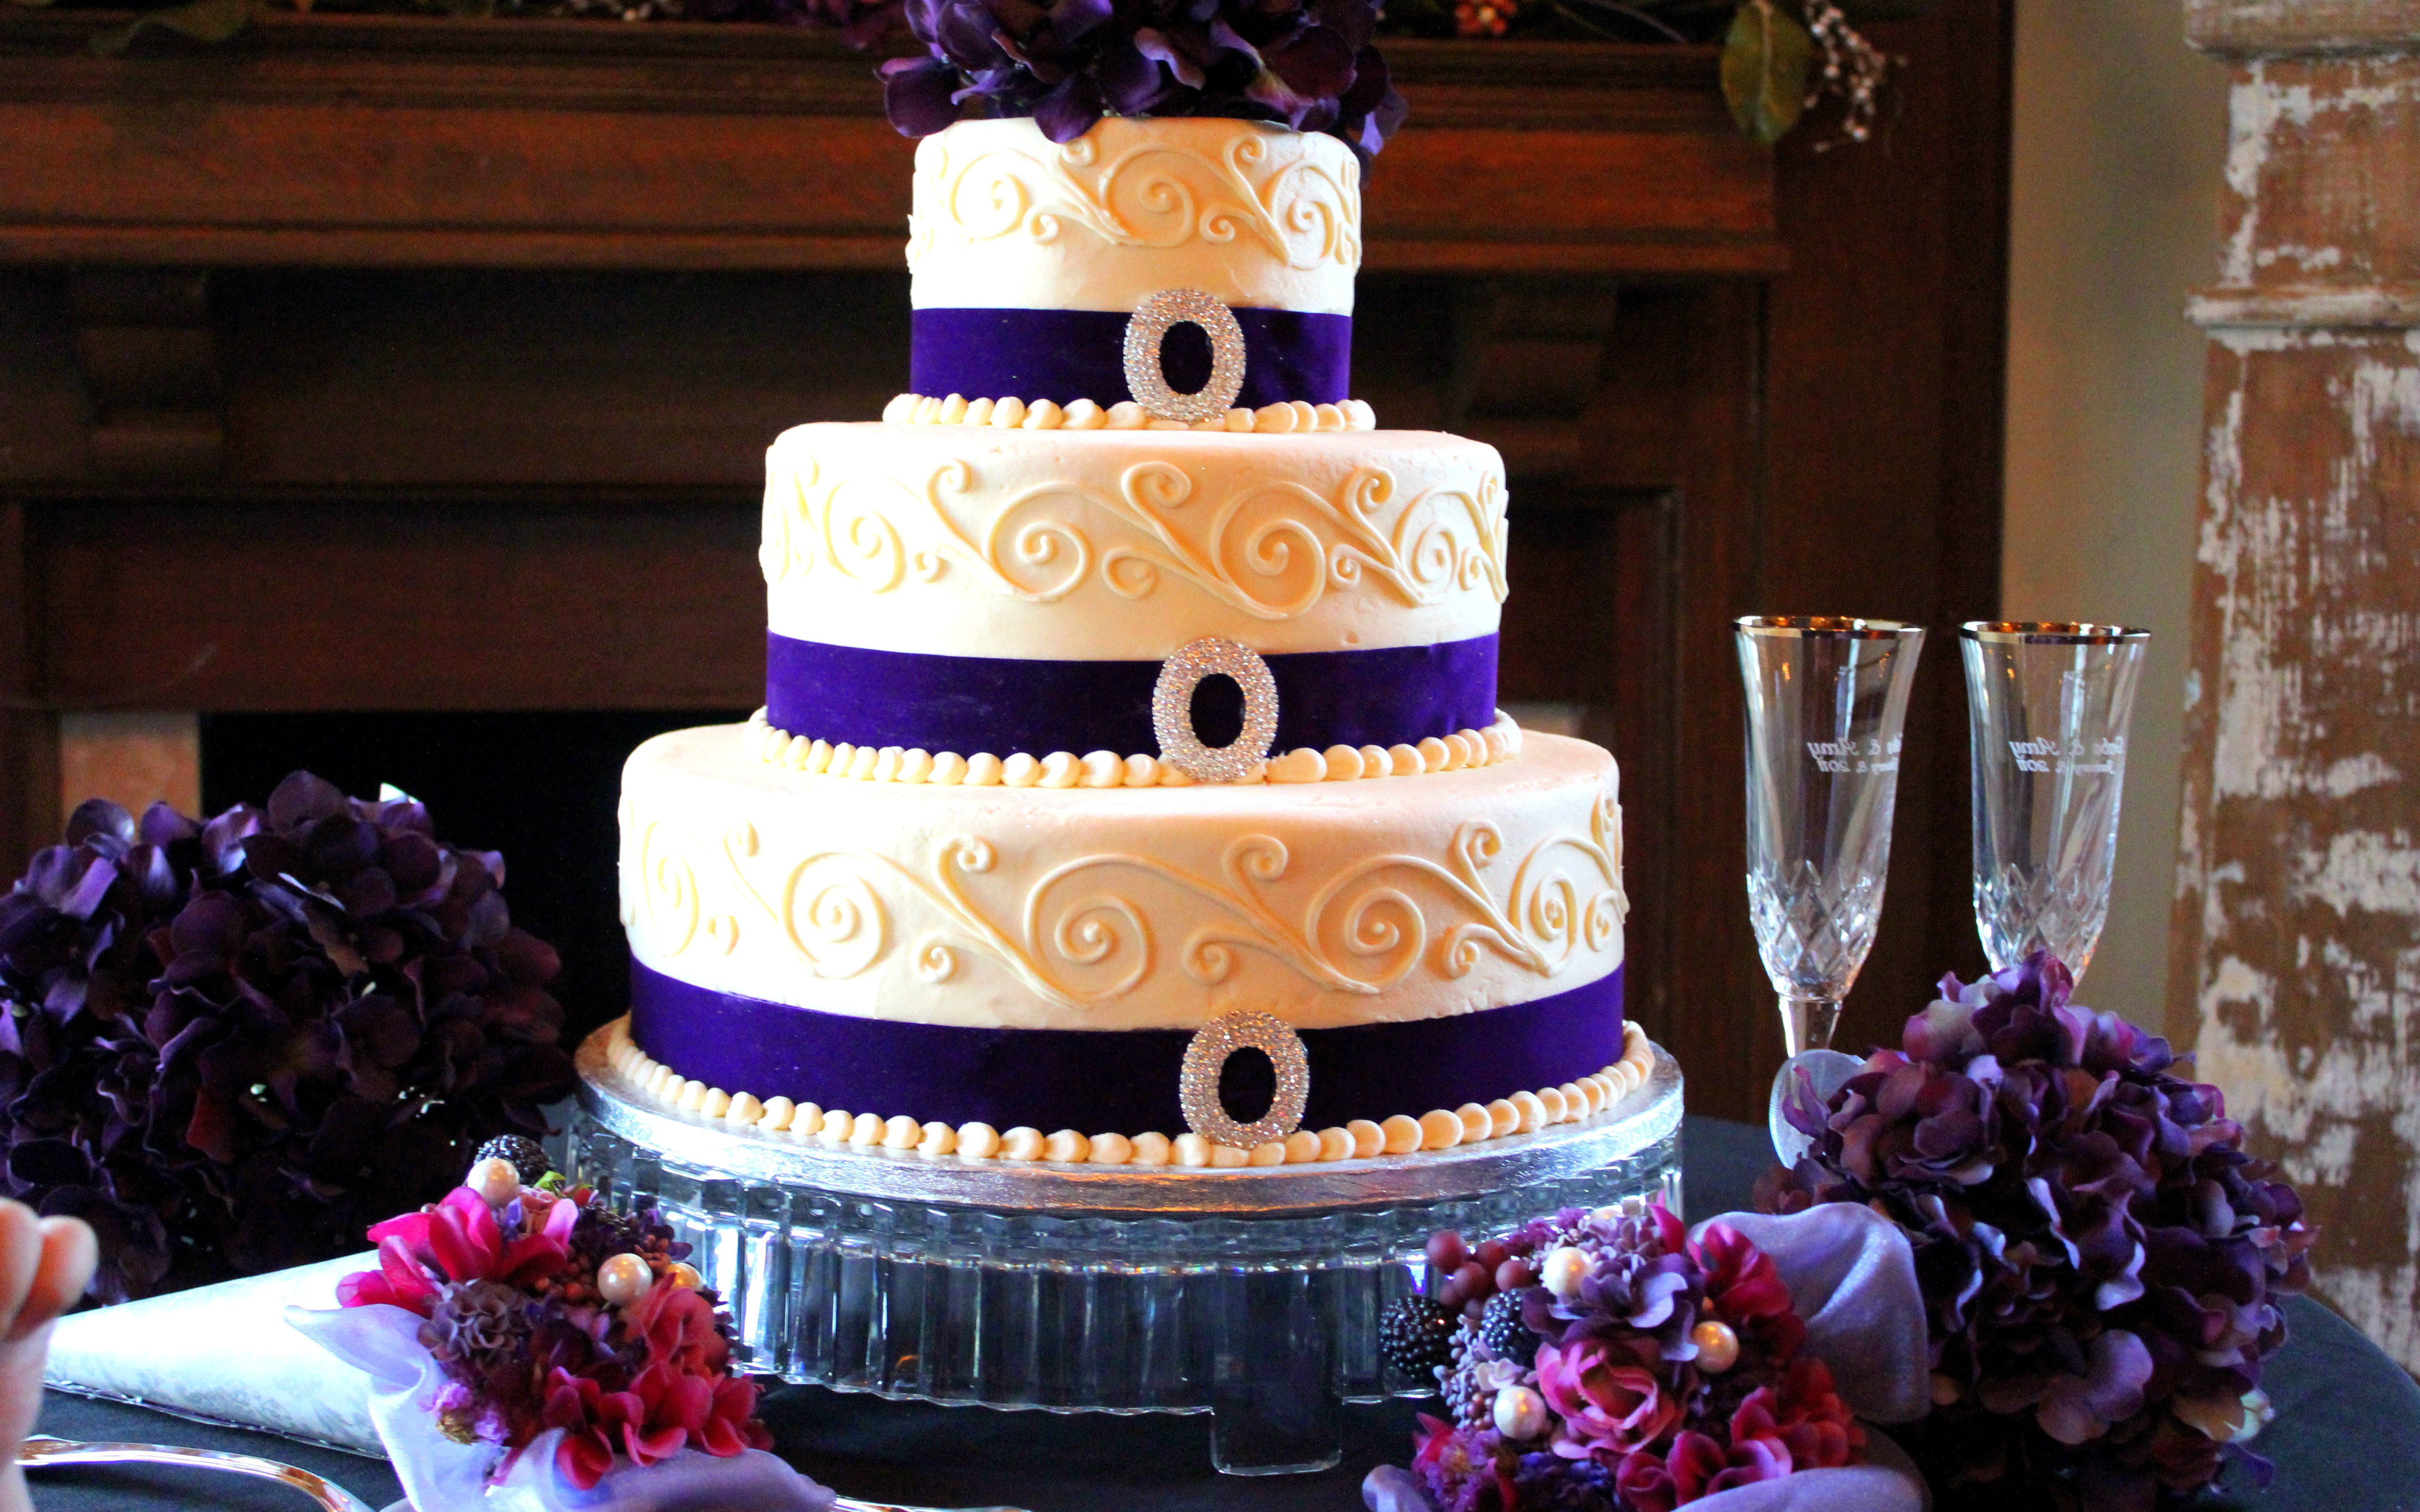 Cakes images wedding cake hd wallpaper and background photos - Cakes Images Wedding Cake Hd Wallpaper And Background Photos 48